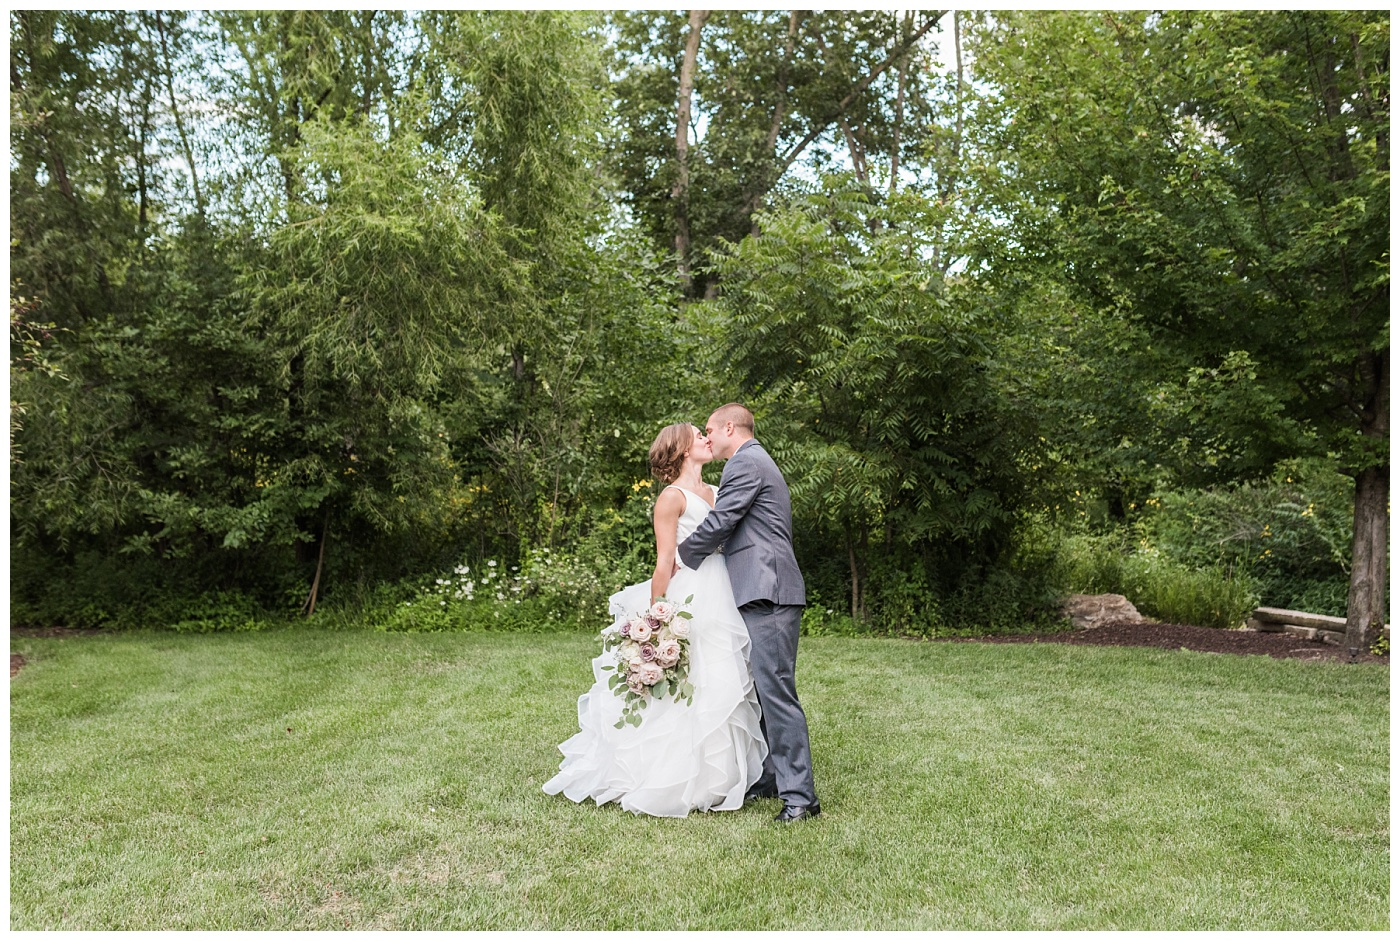 Stephanie Marie Photography Newman Catholic Center Ceremony Bella Sala Reception Tiffin Iowa City Wedding Photographer Chelsey Justin Meyers_0045-1.jpg